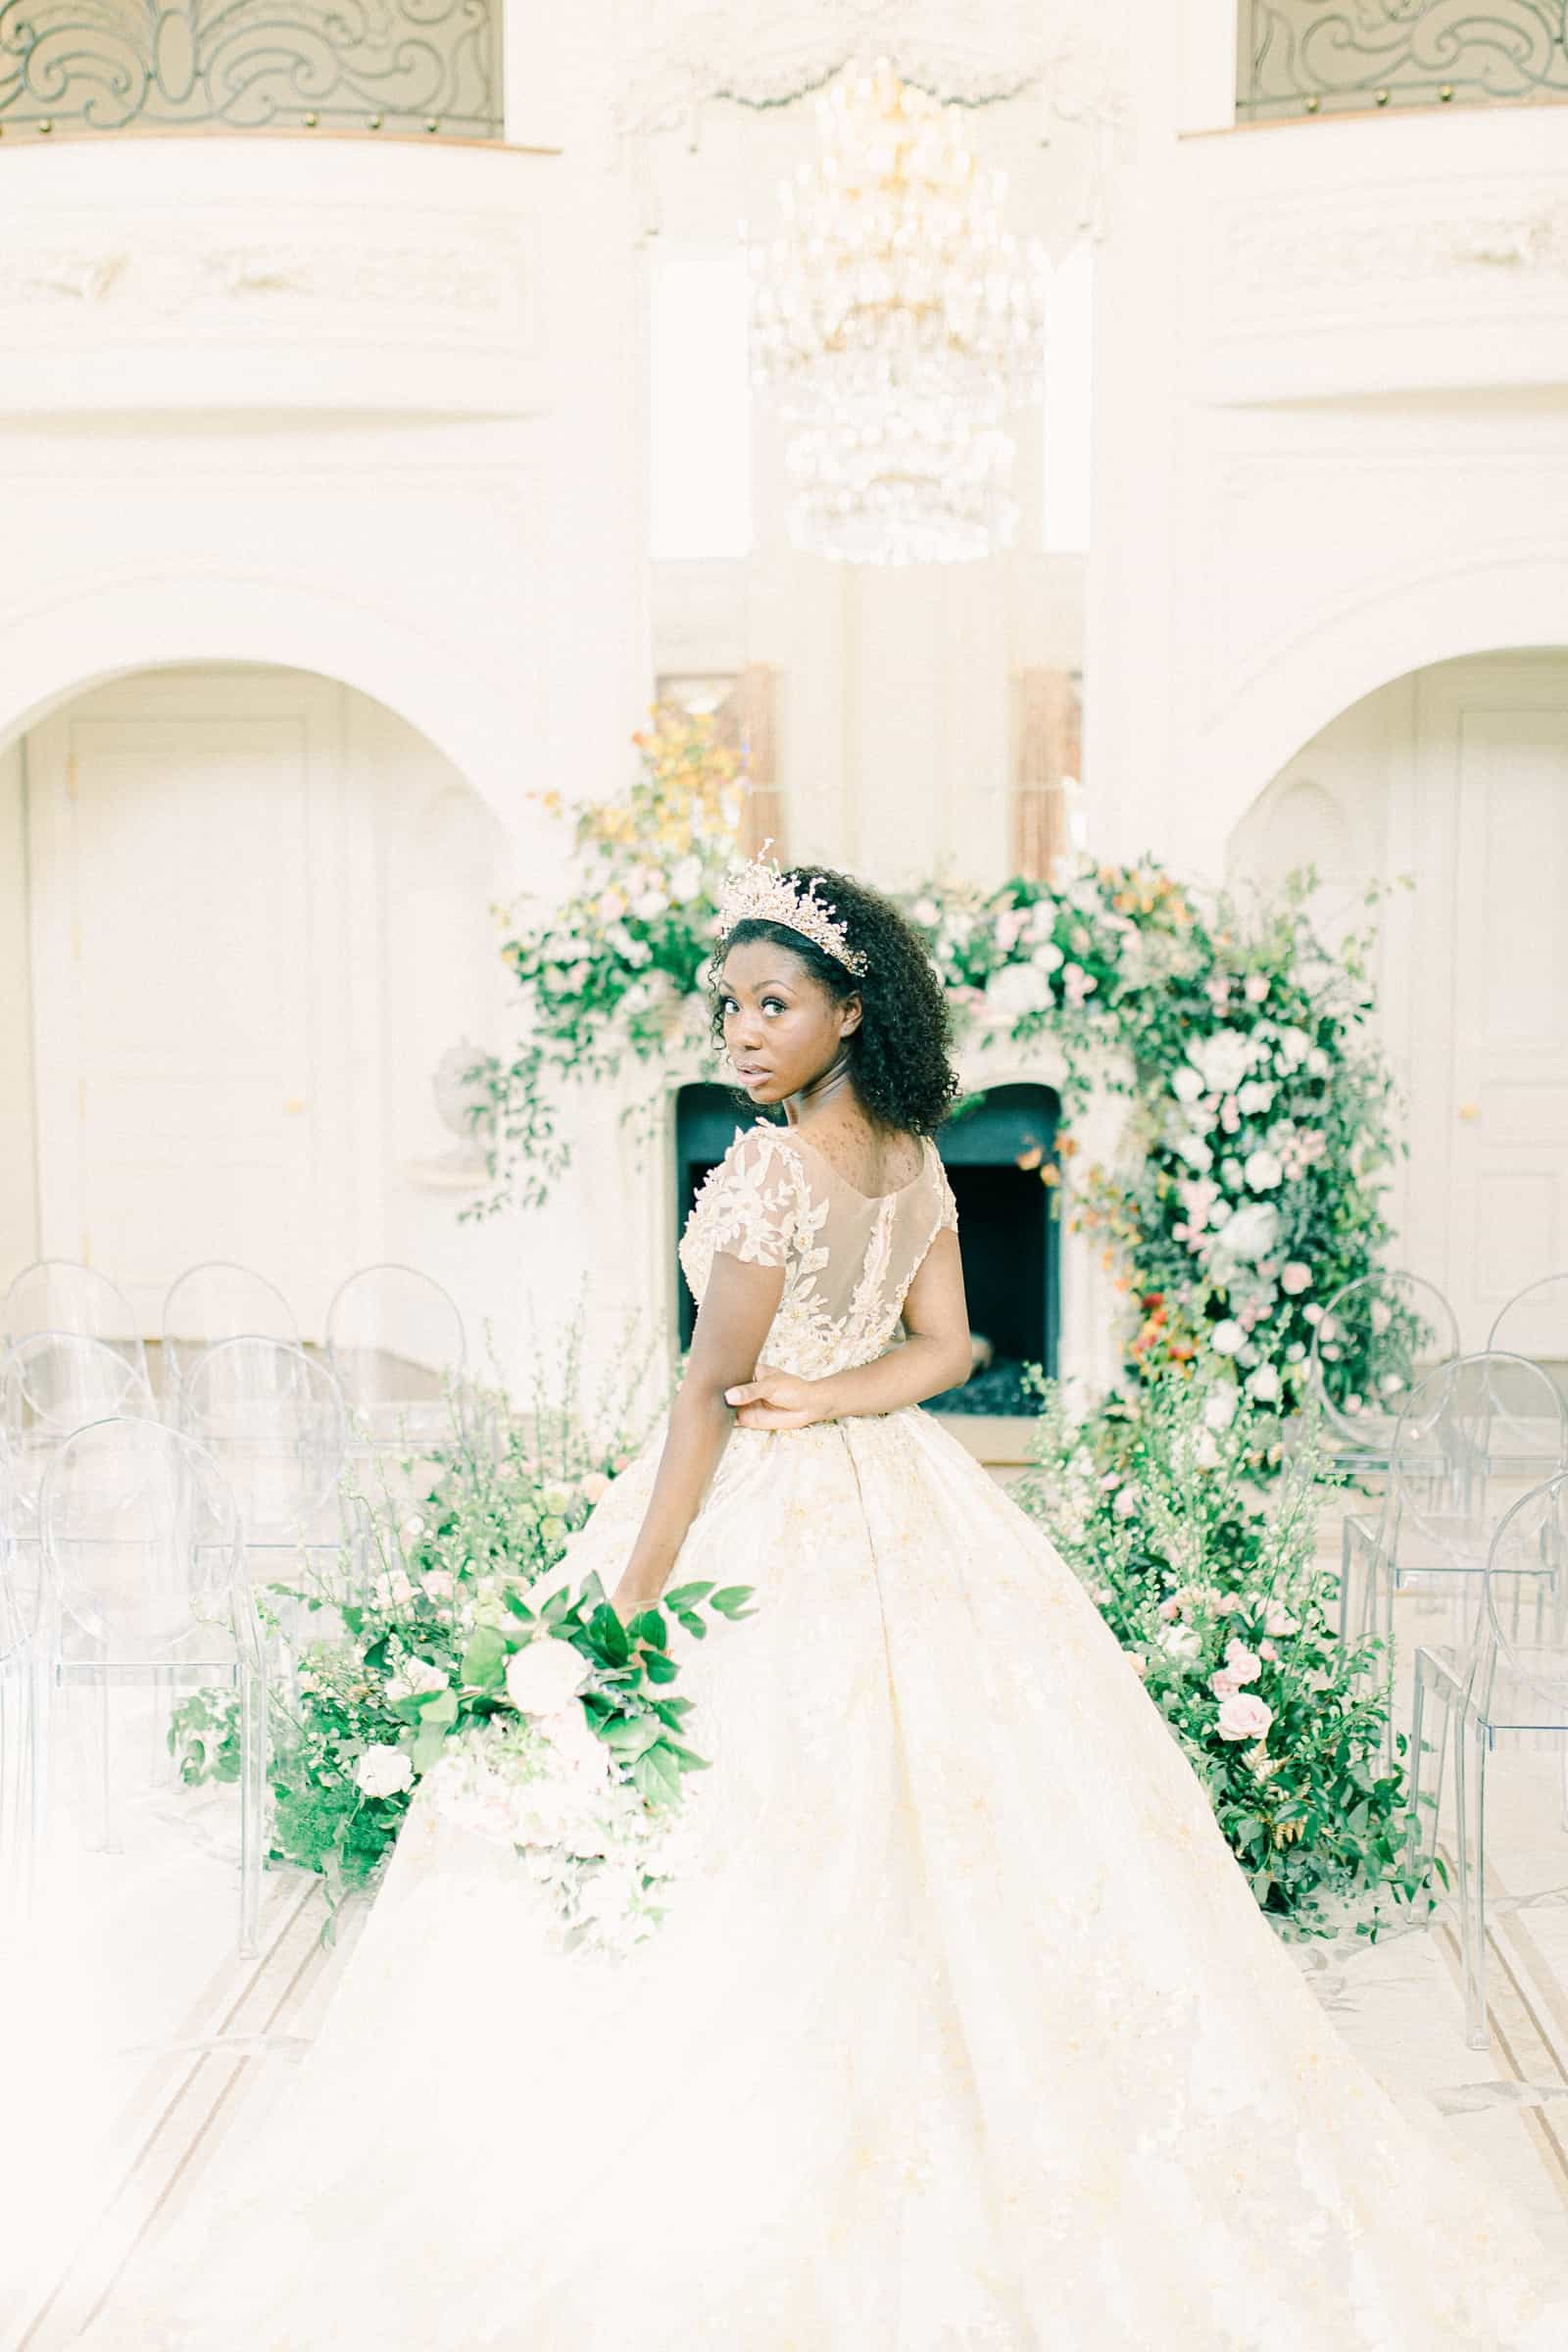 Disney princess bride with tiara in front of greenery and floral arch, garland ceremony decor